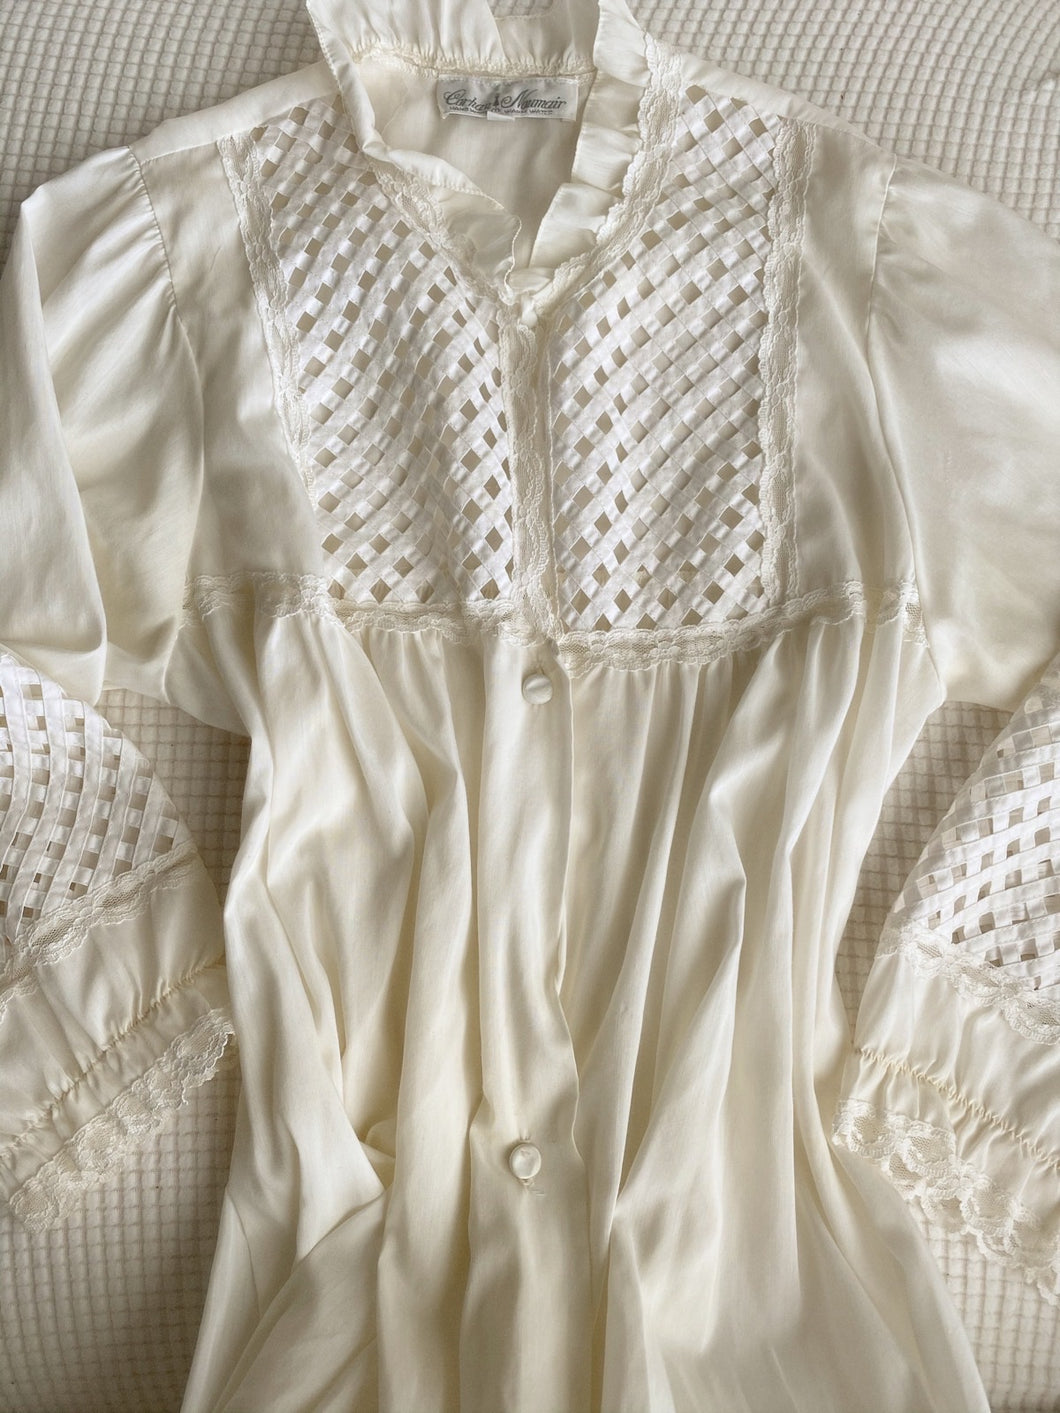 Vintage Romantic Night Gown